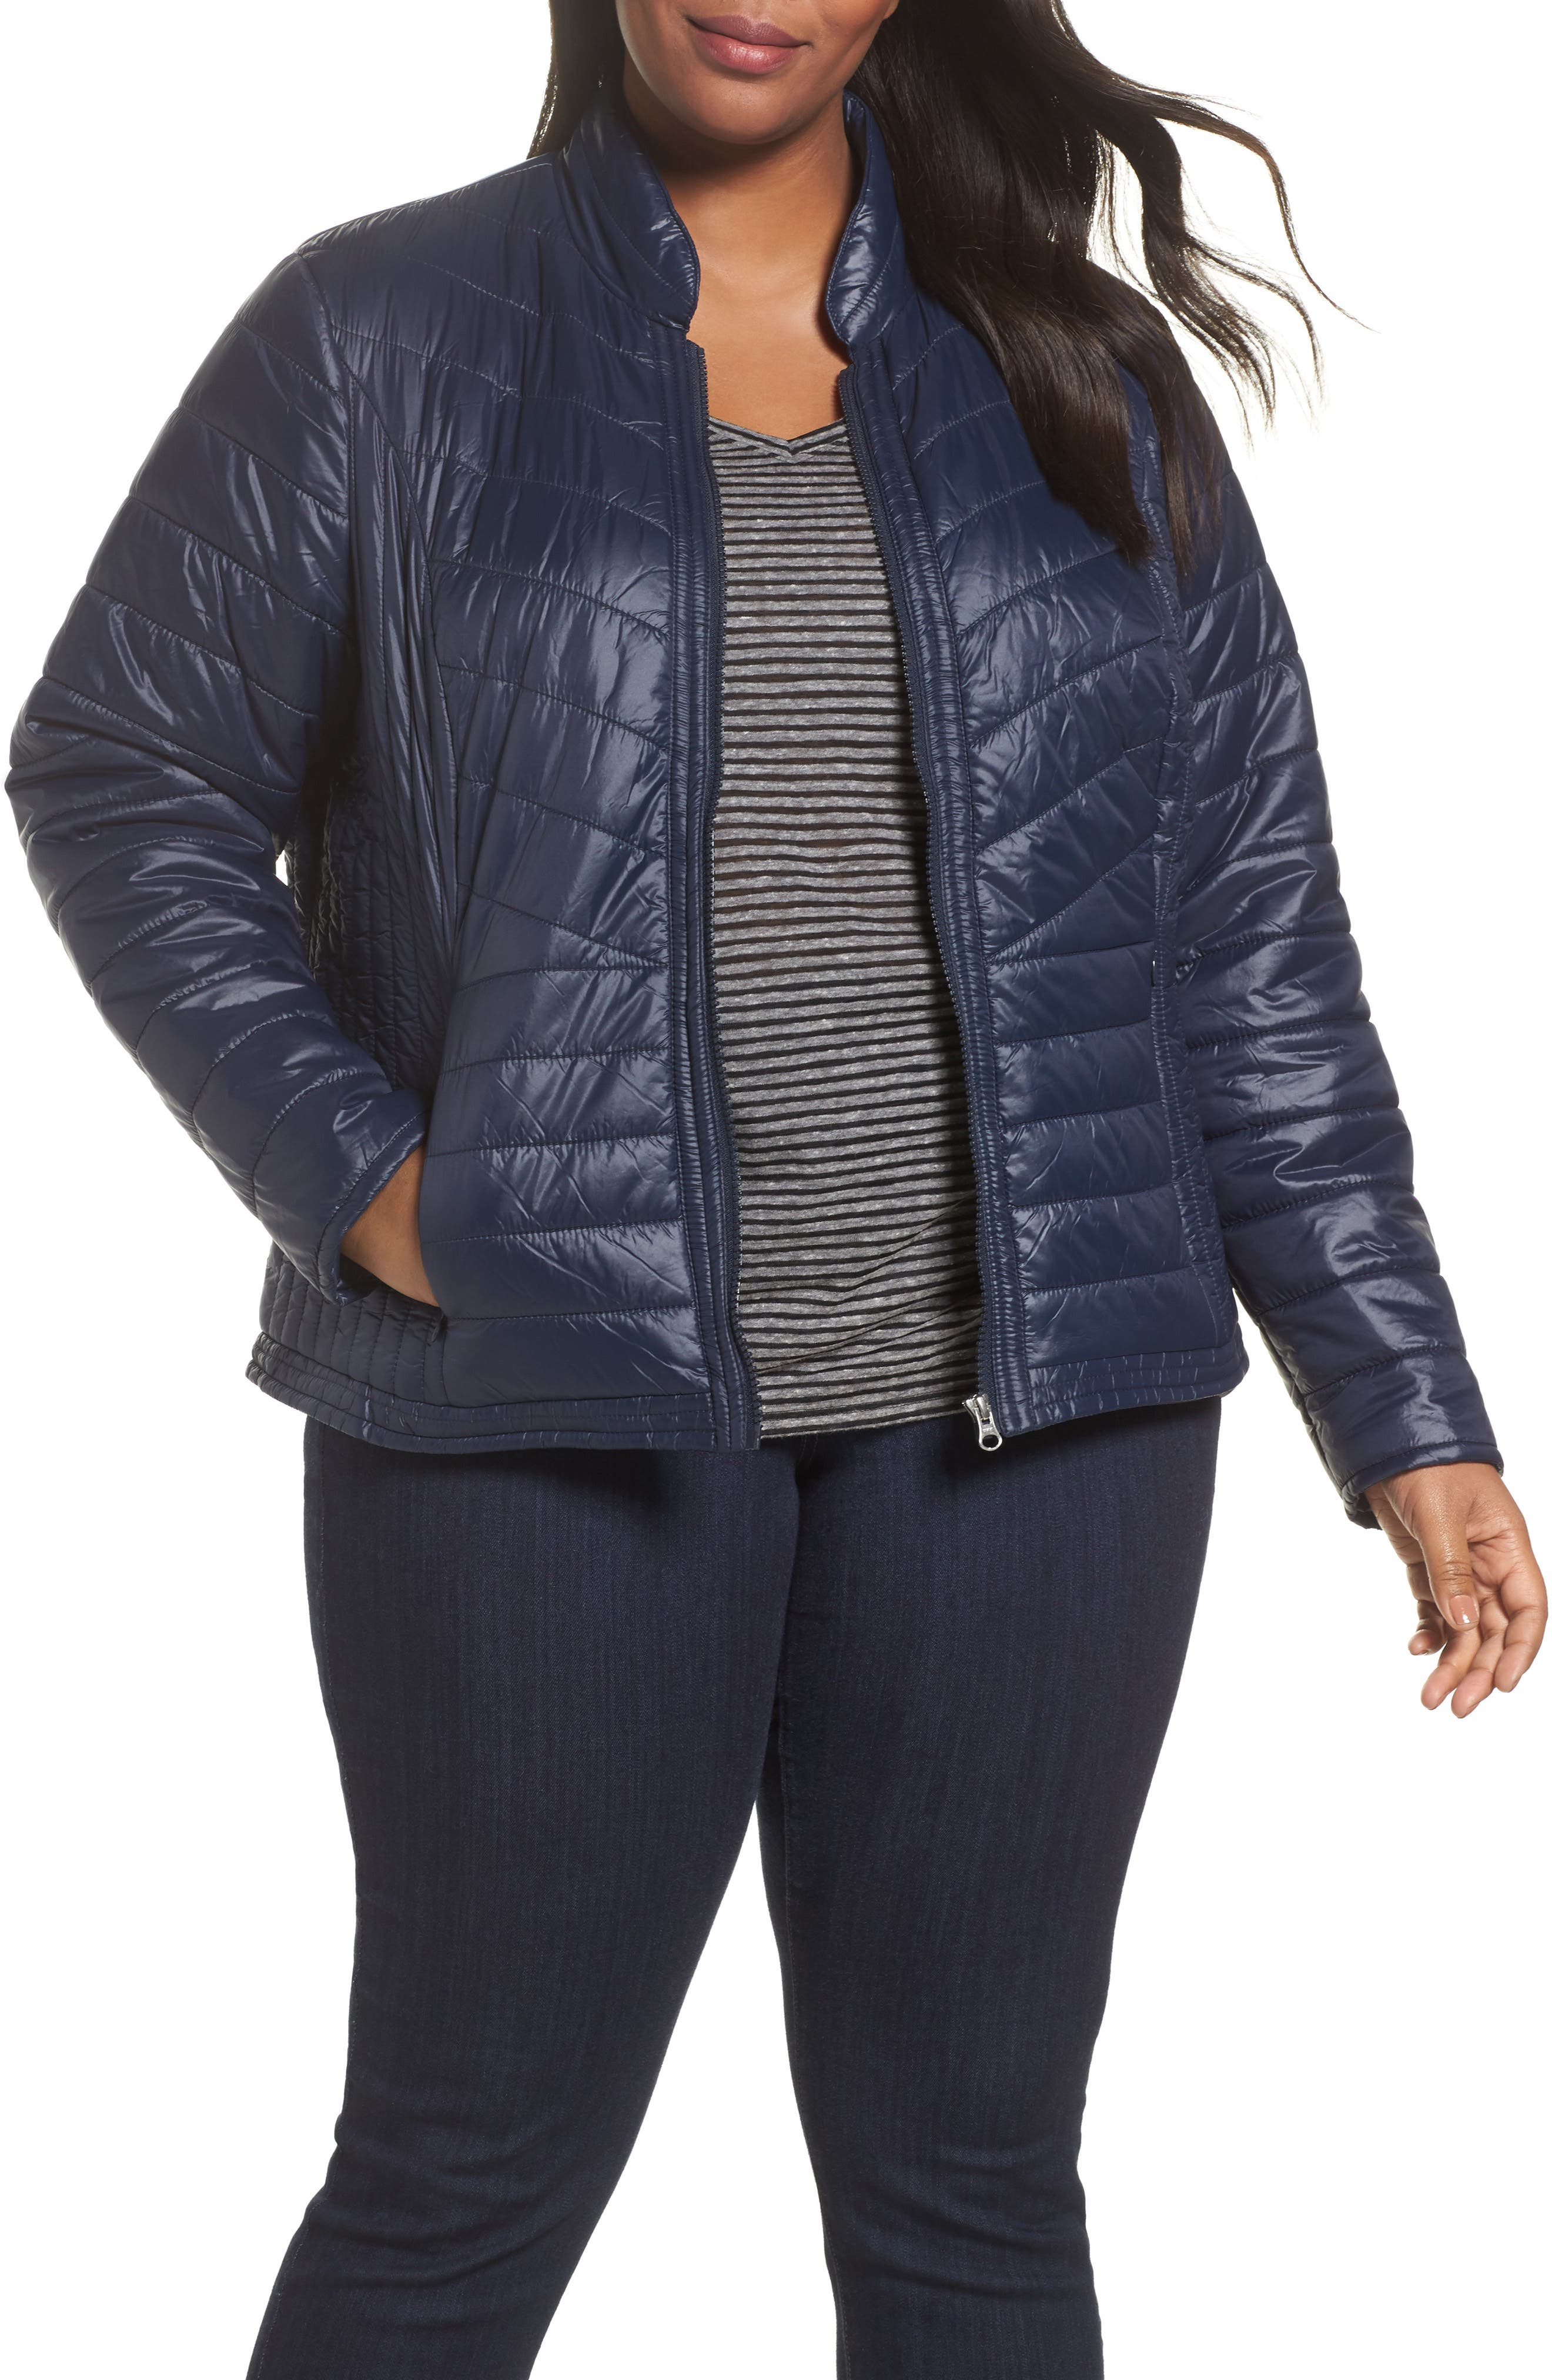 Alternate Image 1 Selected - JUNAROSE Twisted Quilted Puffer Jacket (Plus Size)